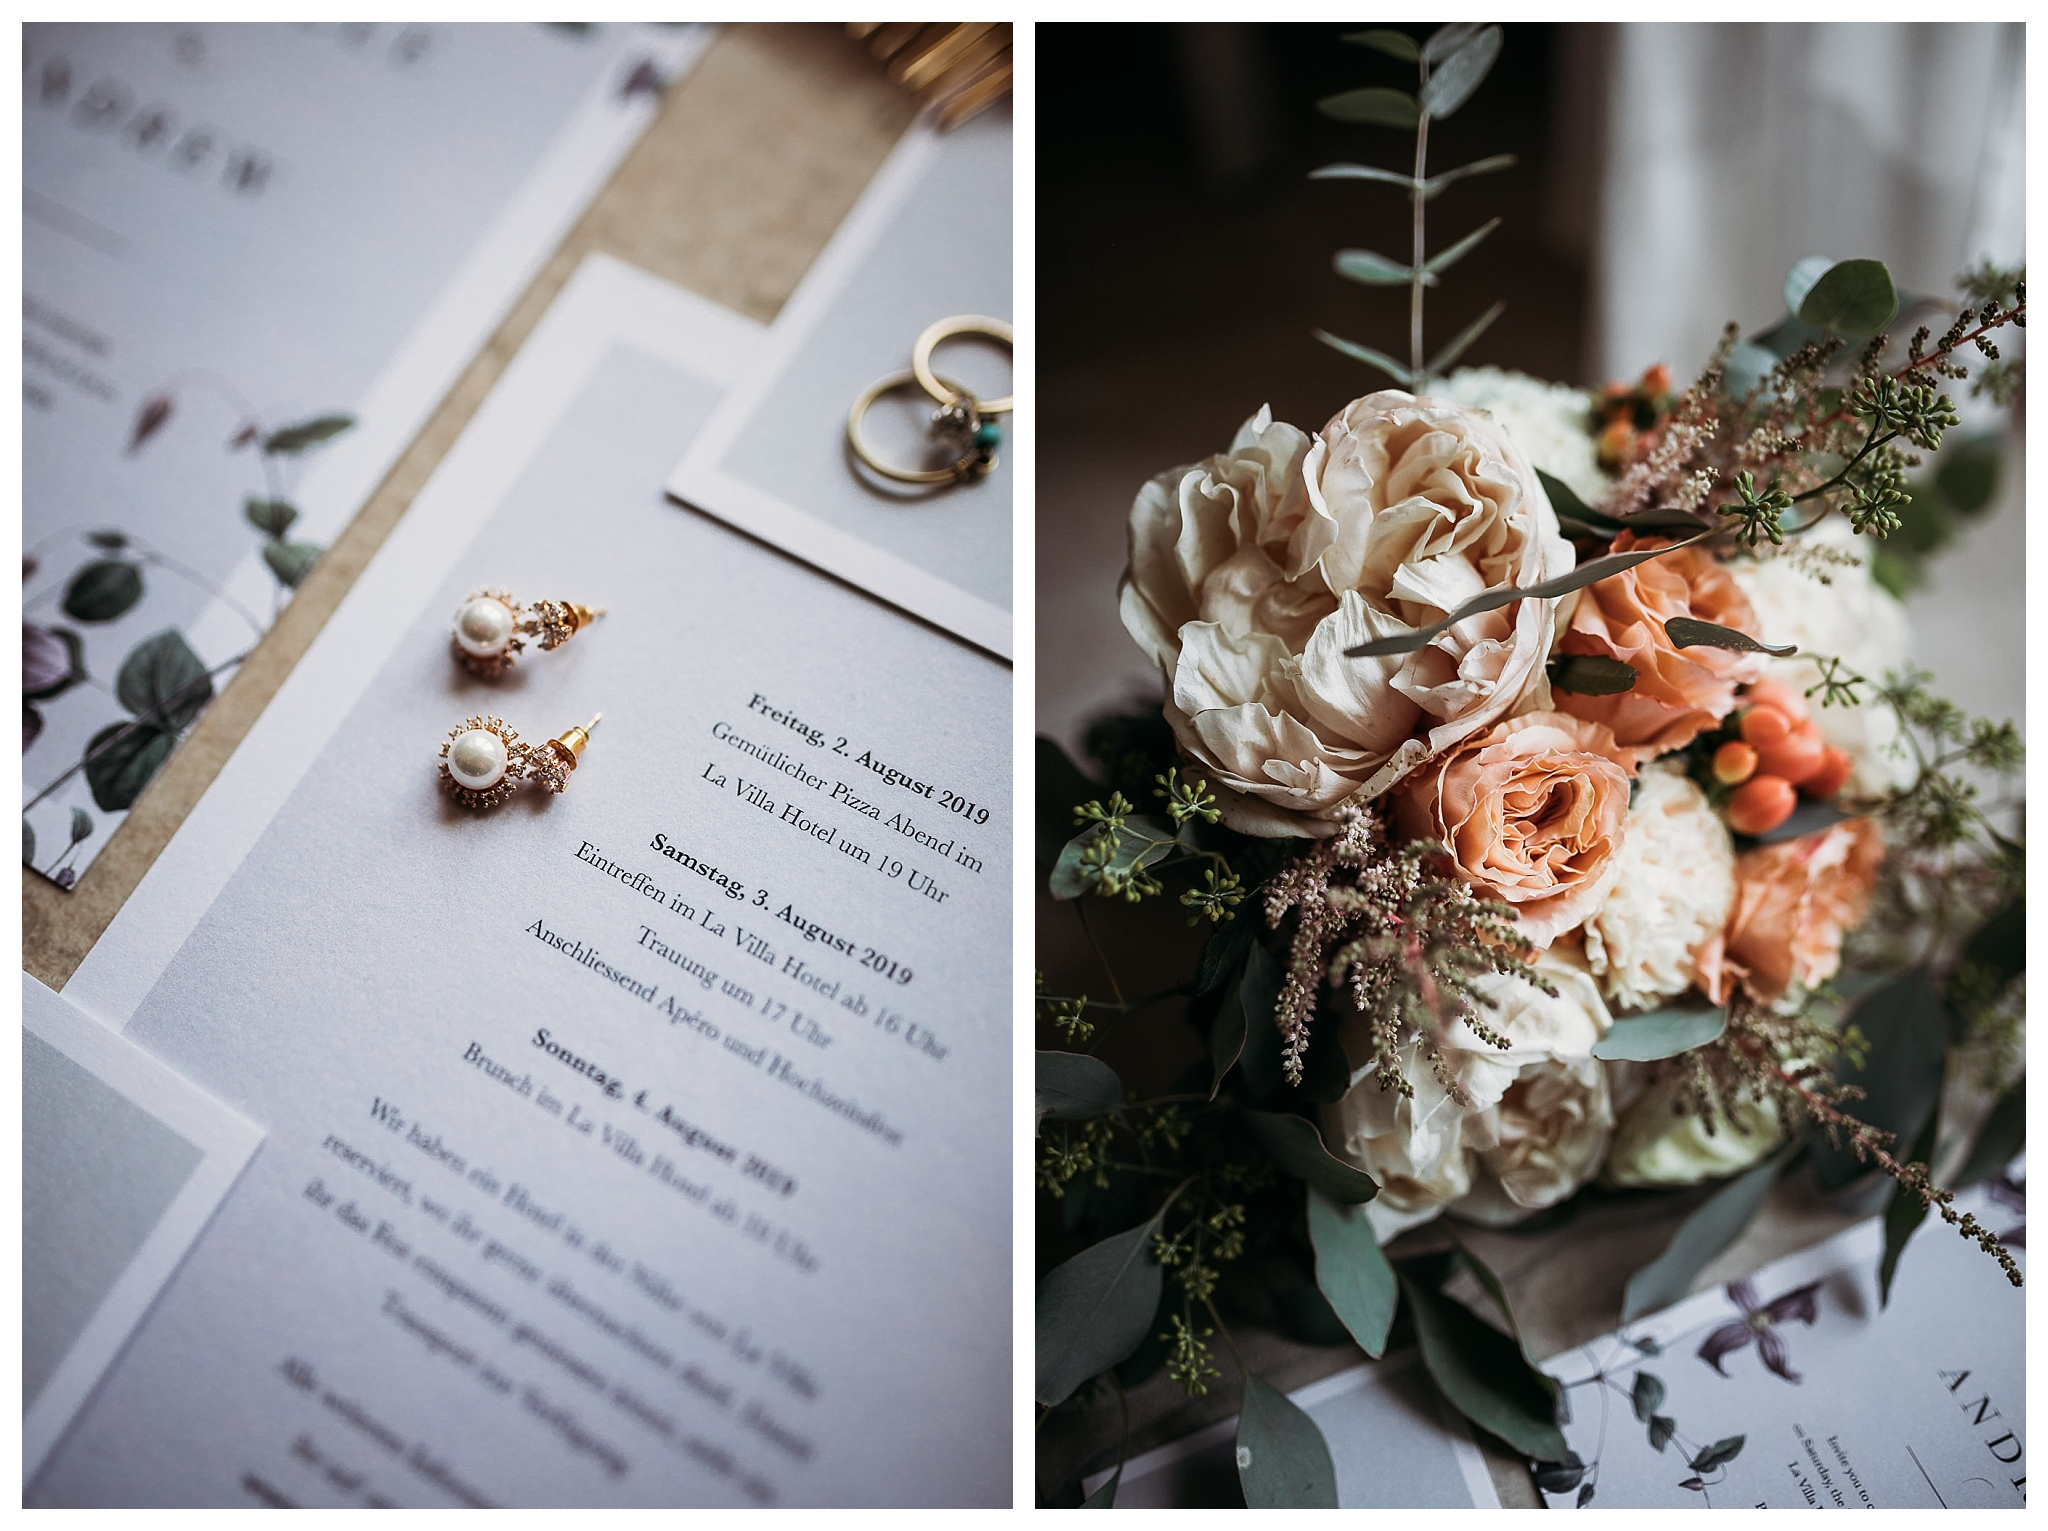 Wedding bouquet with peach and pale pink roses and old earrings